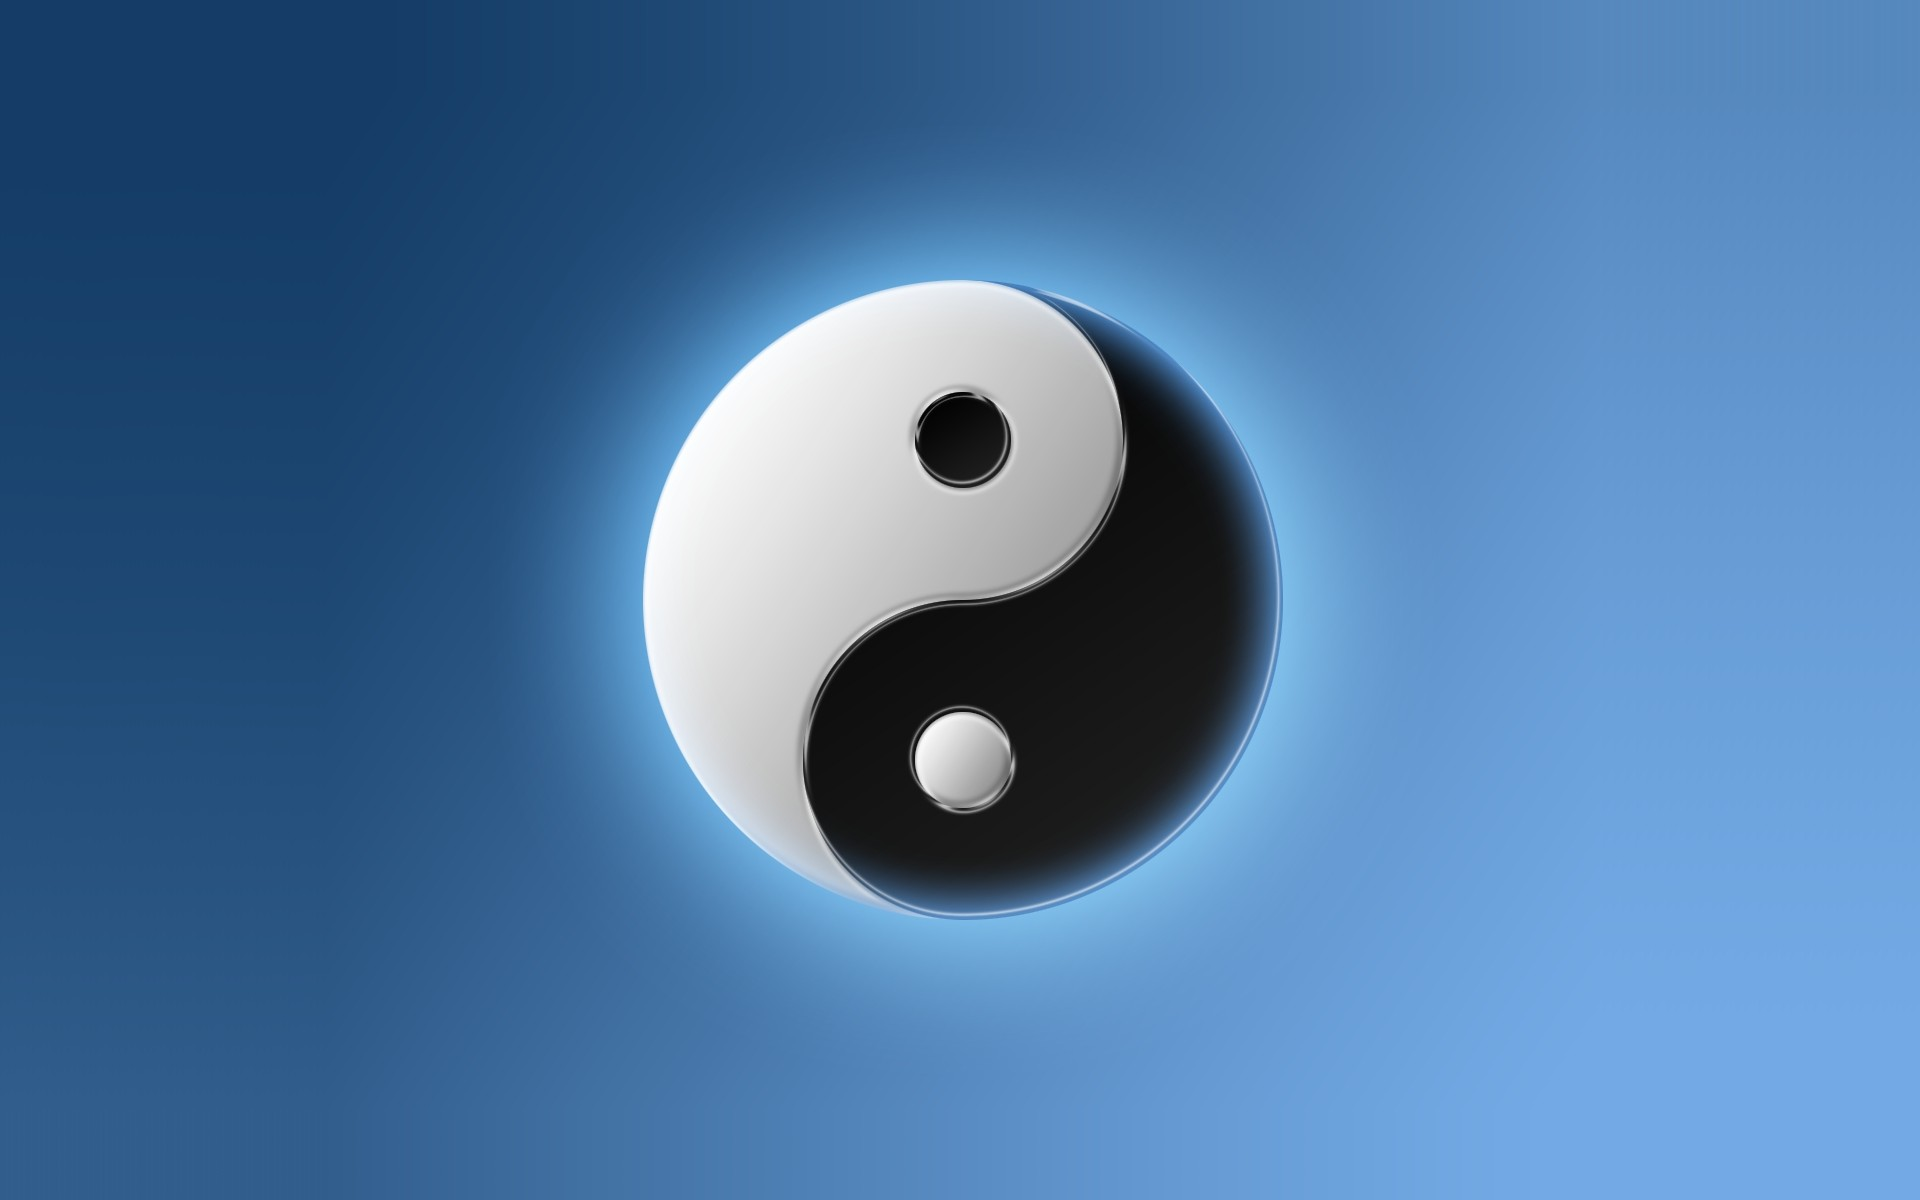 yin yang wallpaper ·① download free amazing backgrounds for desktop